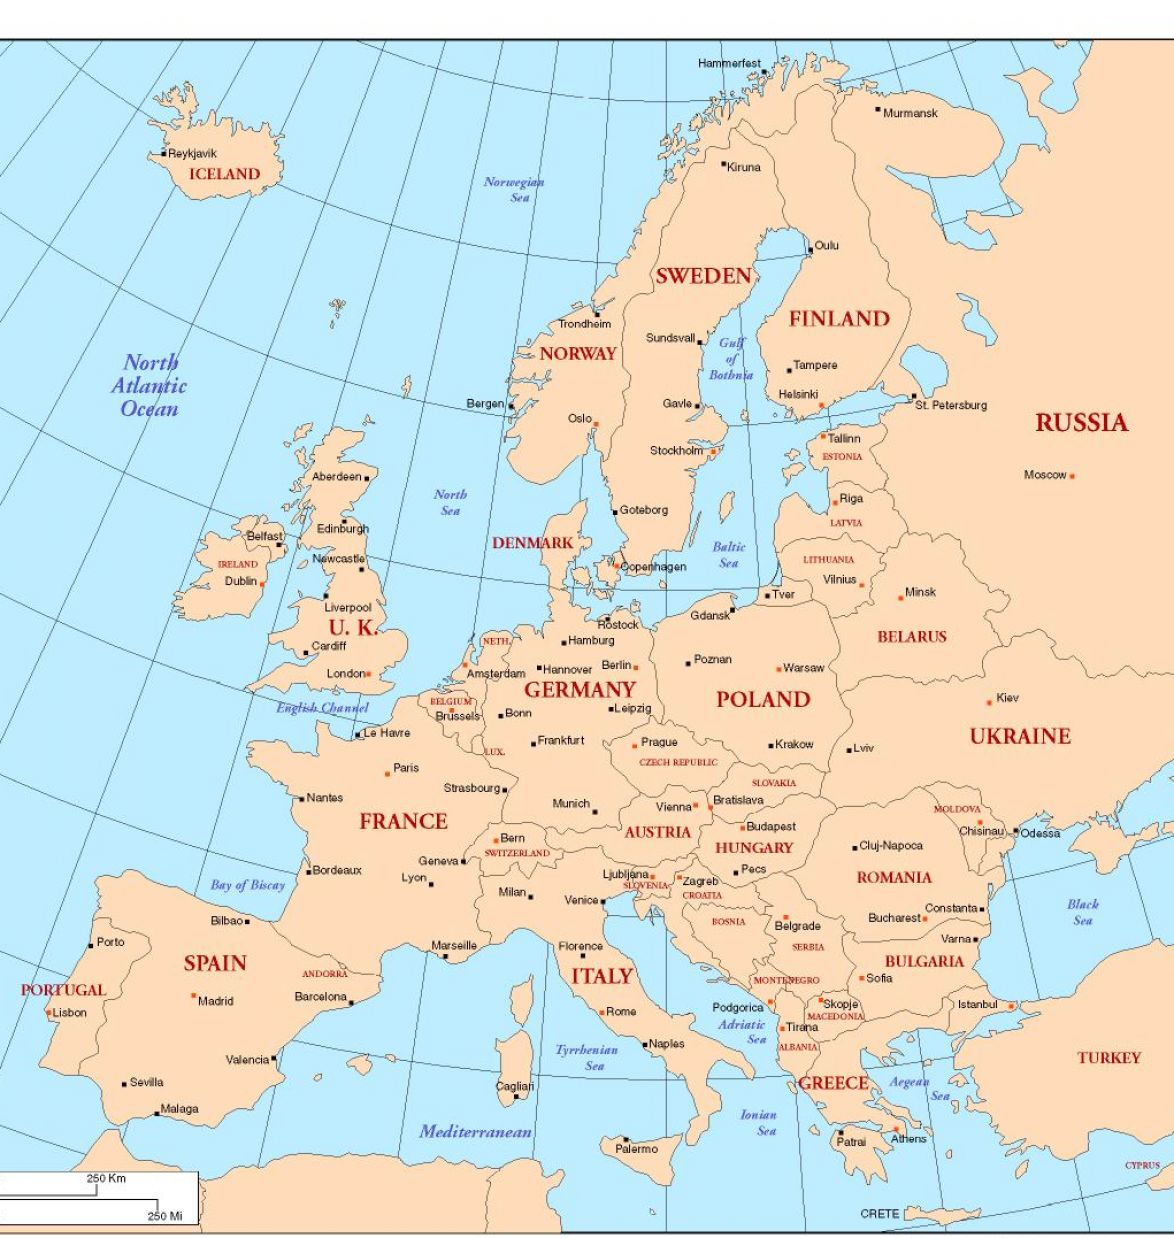 Europe Countries And Capitals Related Keywords & Suggestions - Europe ...